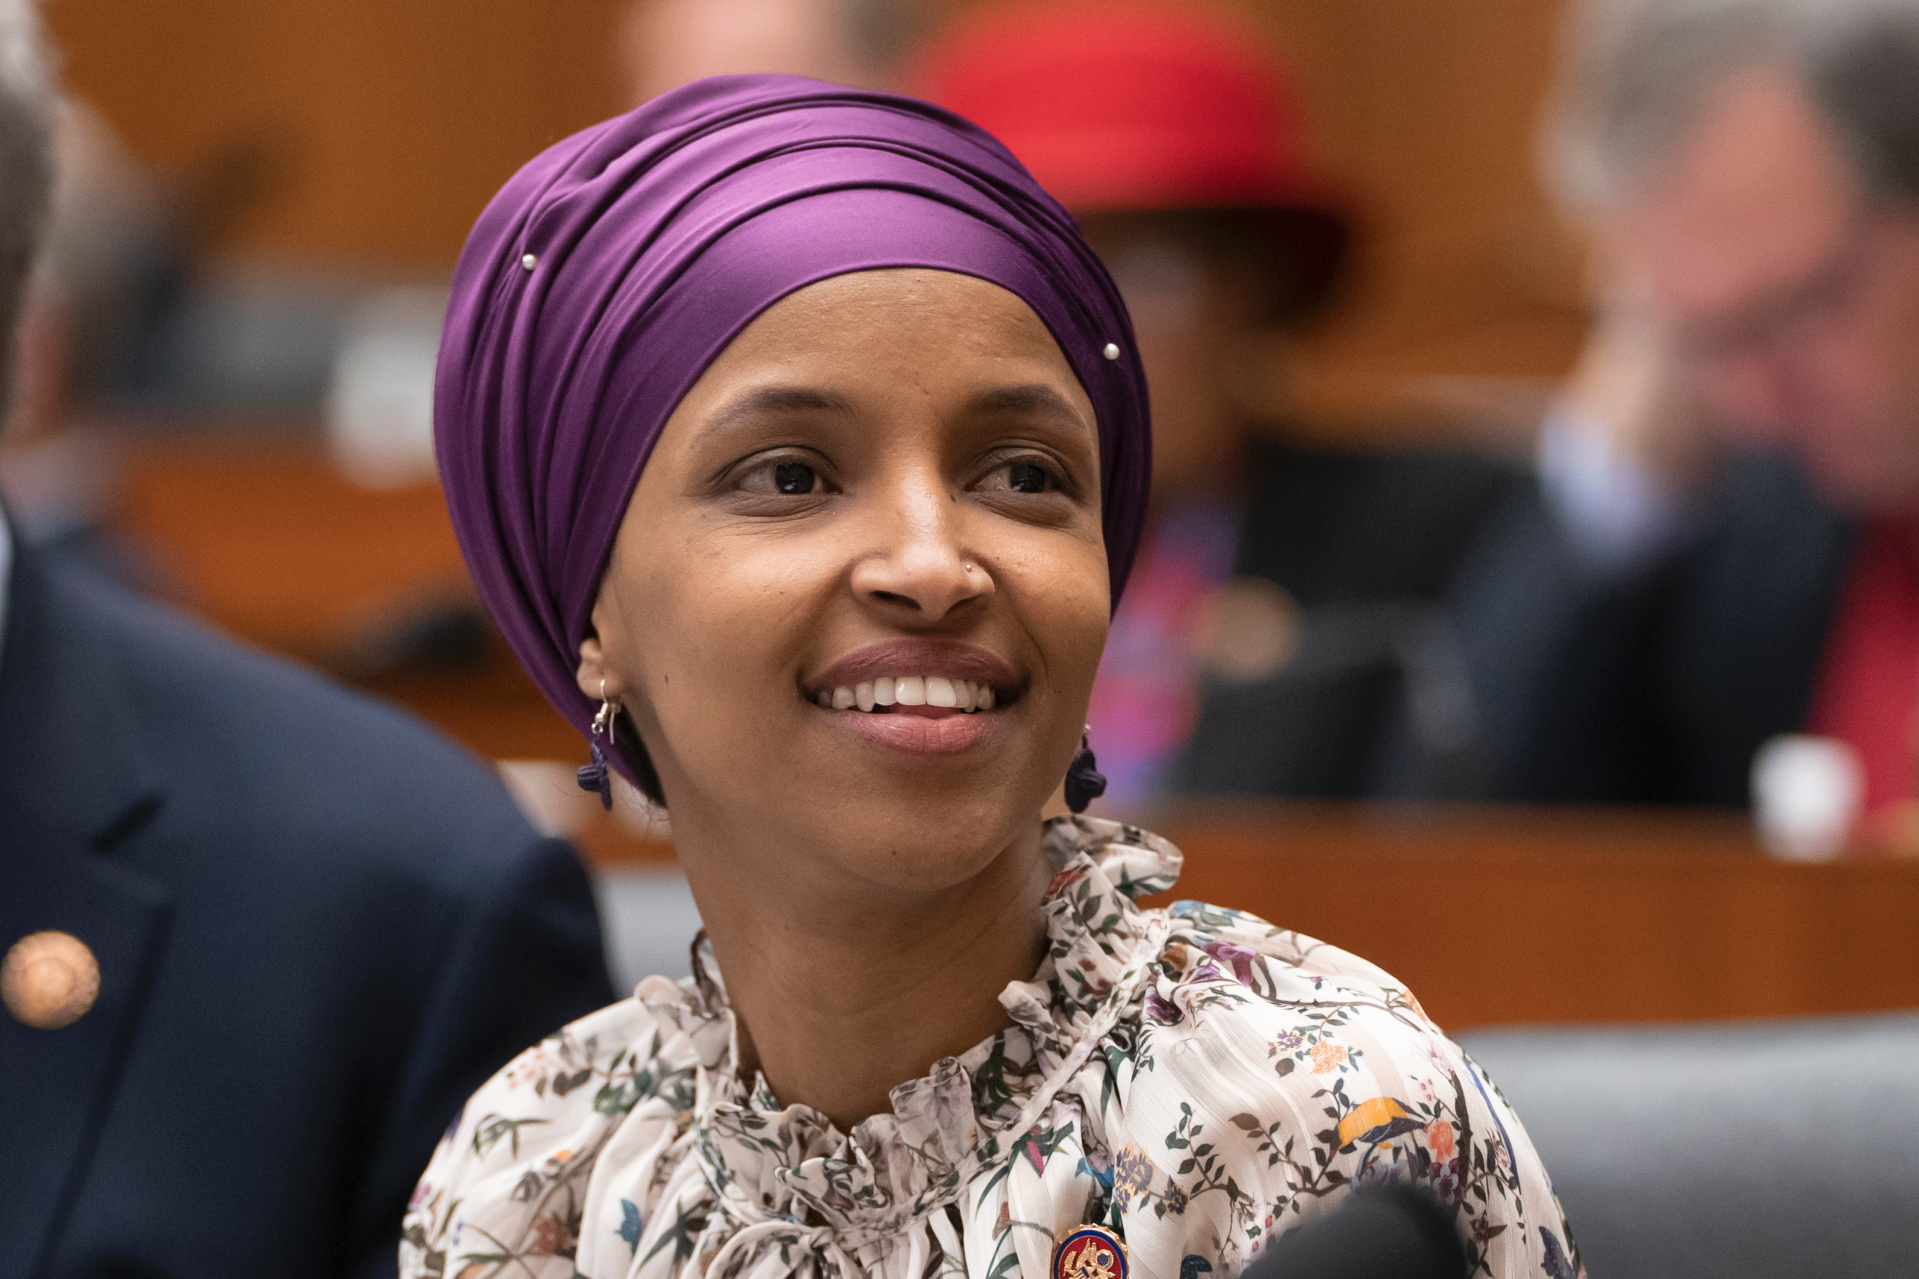 Embattled US Rep. Ilhan Omar tweets 'happy Passover'